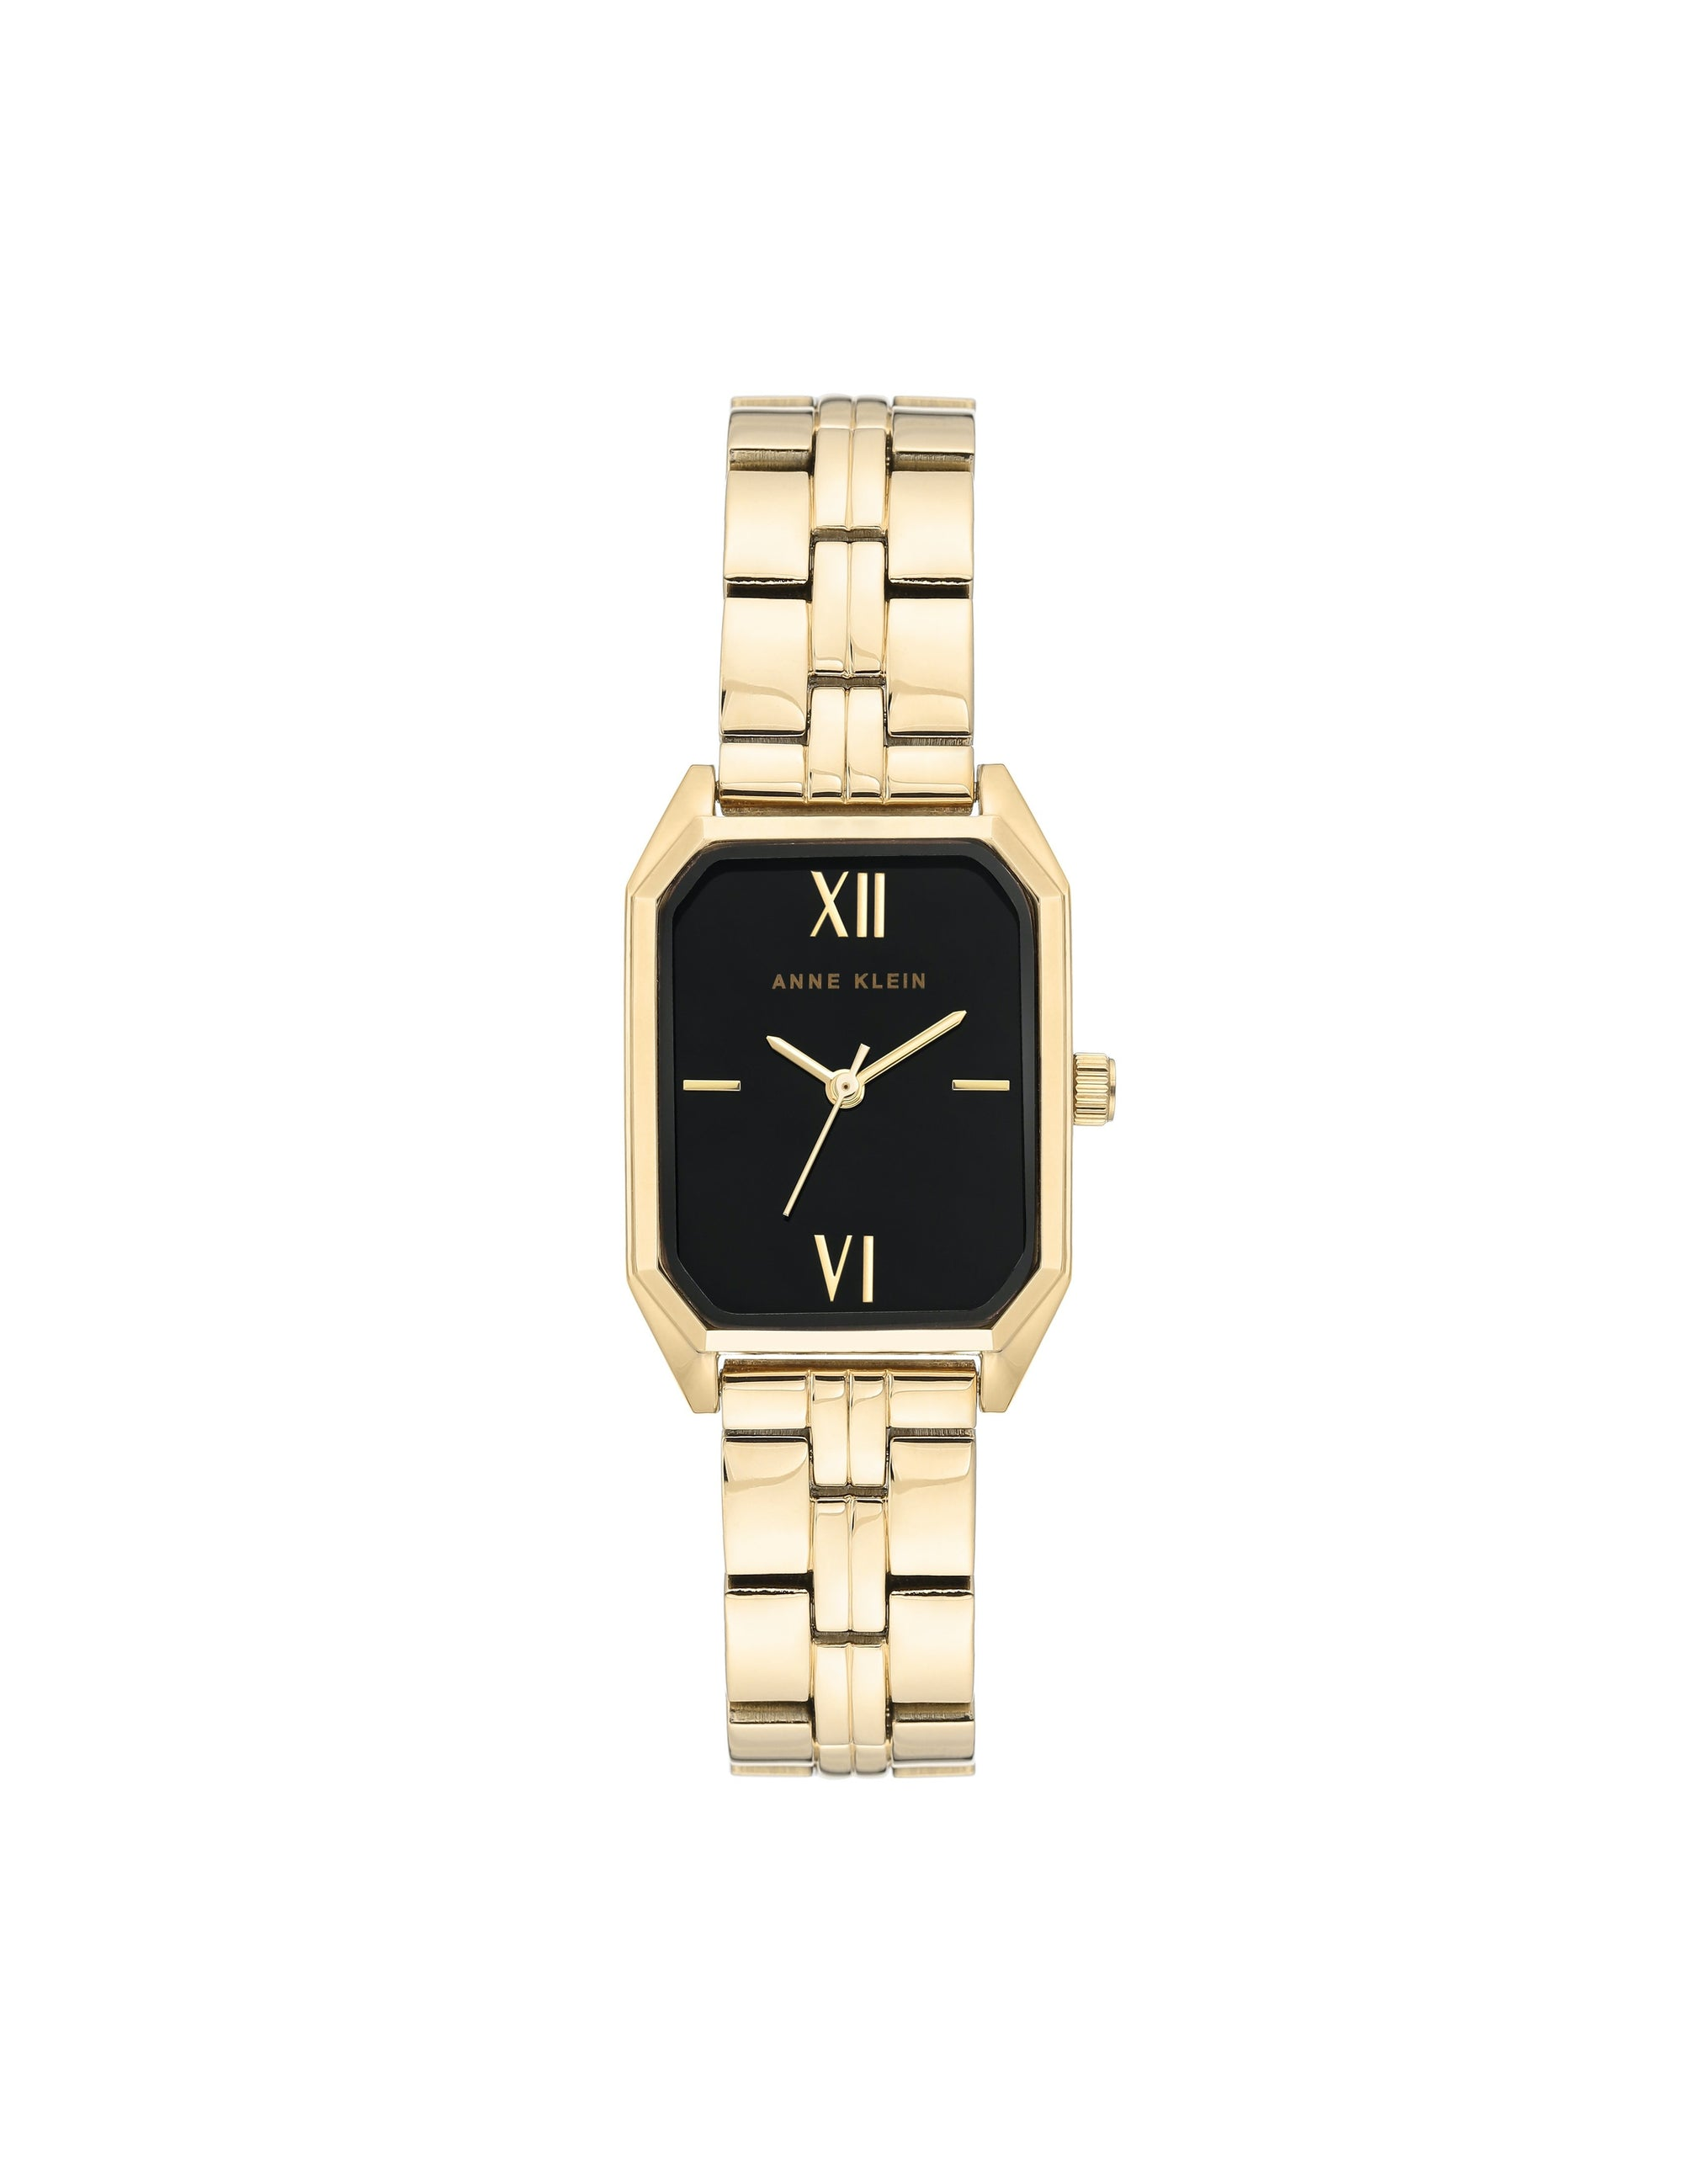 gold black bracelet watch octagon shaped case